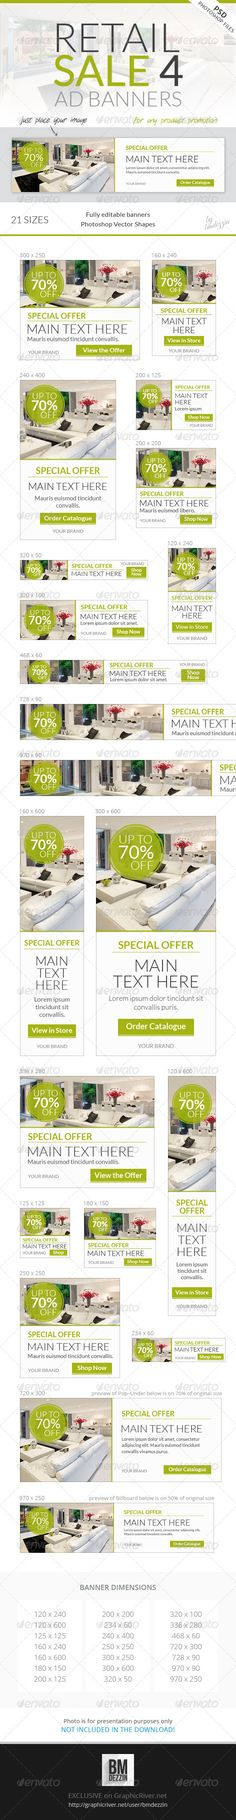 Buy Retail Sale 4 Web Ad Banners by bmdezzin on GraphicRiver. From original author of Retail Banners on GraphicRiver: Retail Sale 4 Web Banner Ads A collection of light, flat, cl. Banner Design Inspiration, Web Banner Design, Web Banners, Ad Design, Branding Design, Layout Design, Graphic Design, Environmental Graphics, Banner Template